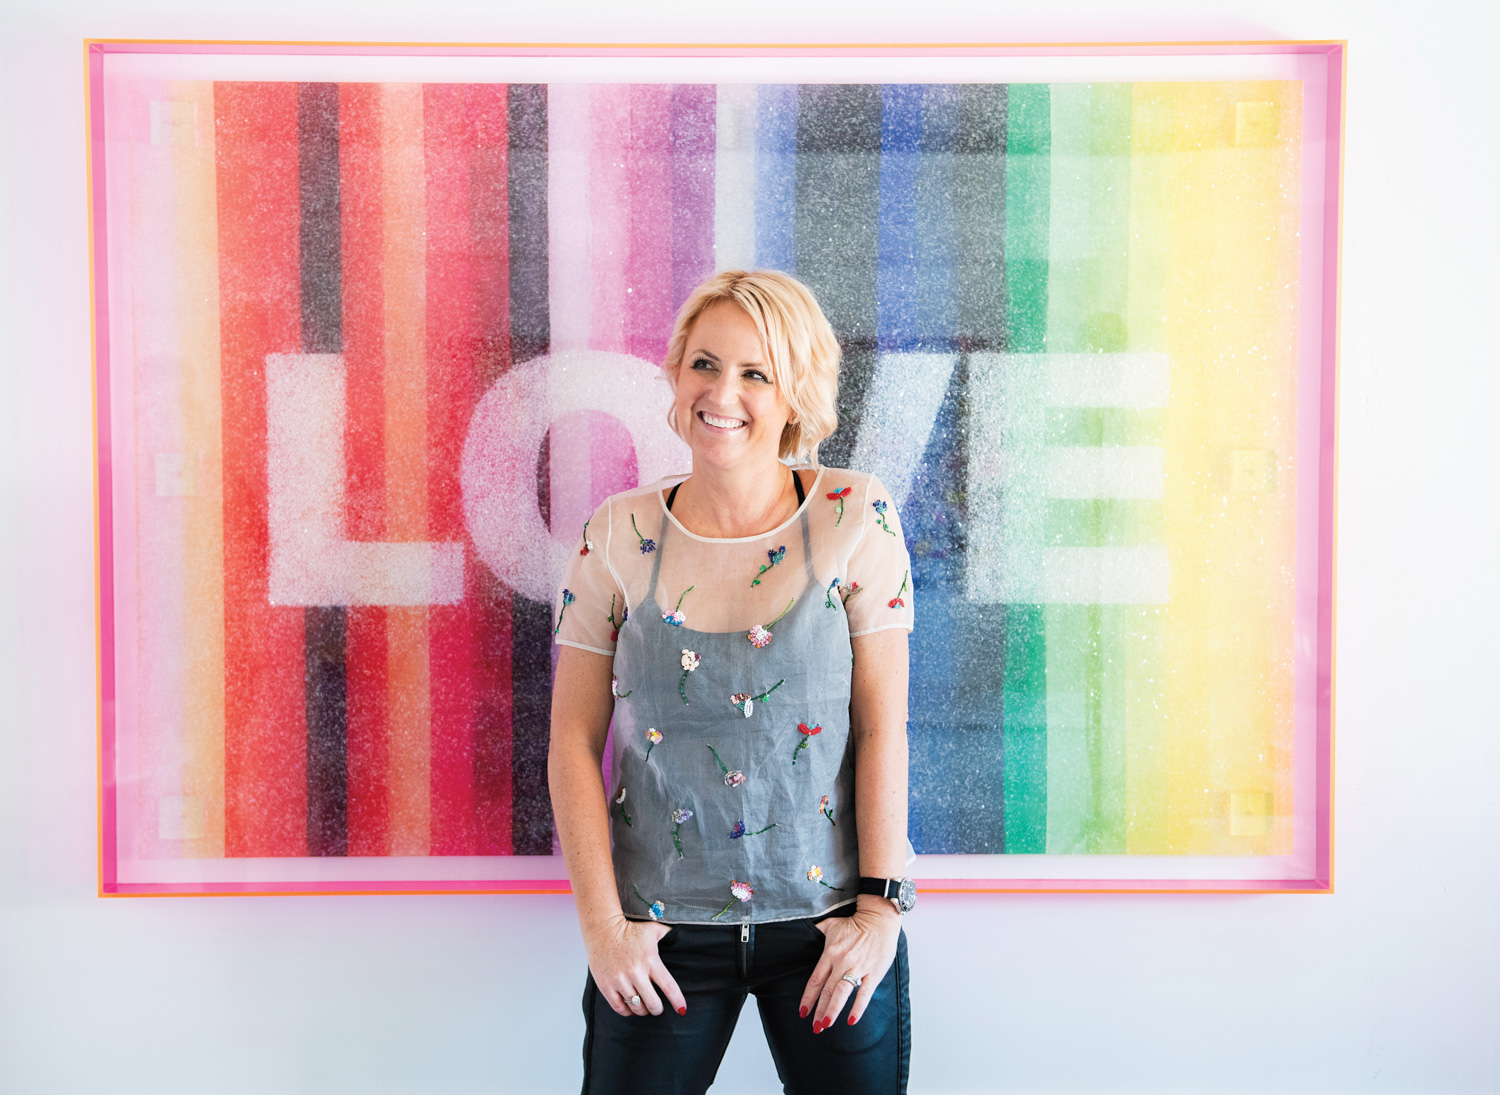 Artist in front of rainbow-colored artwork